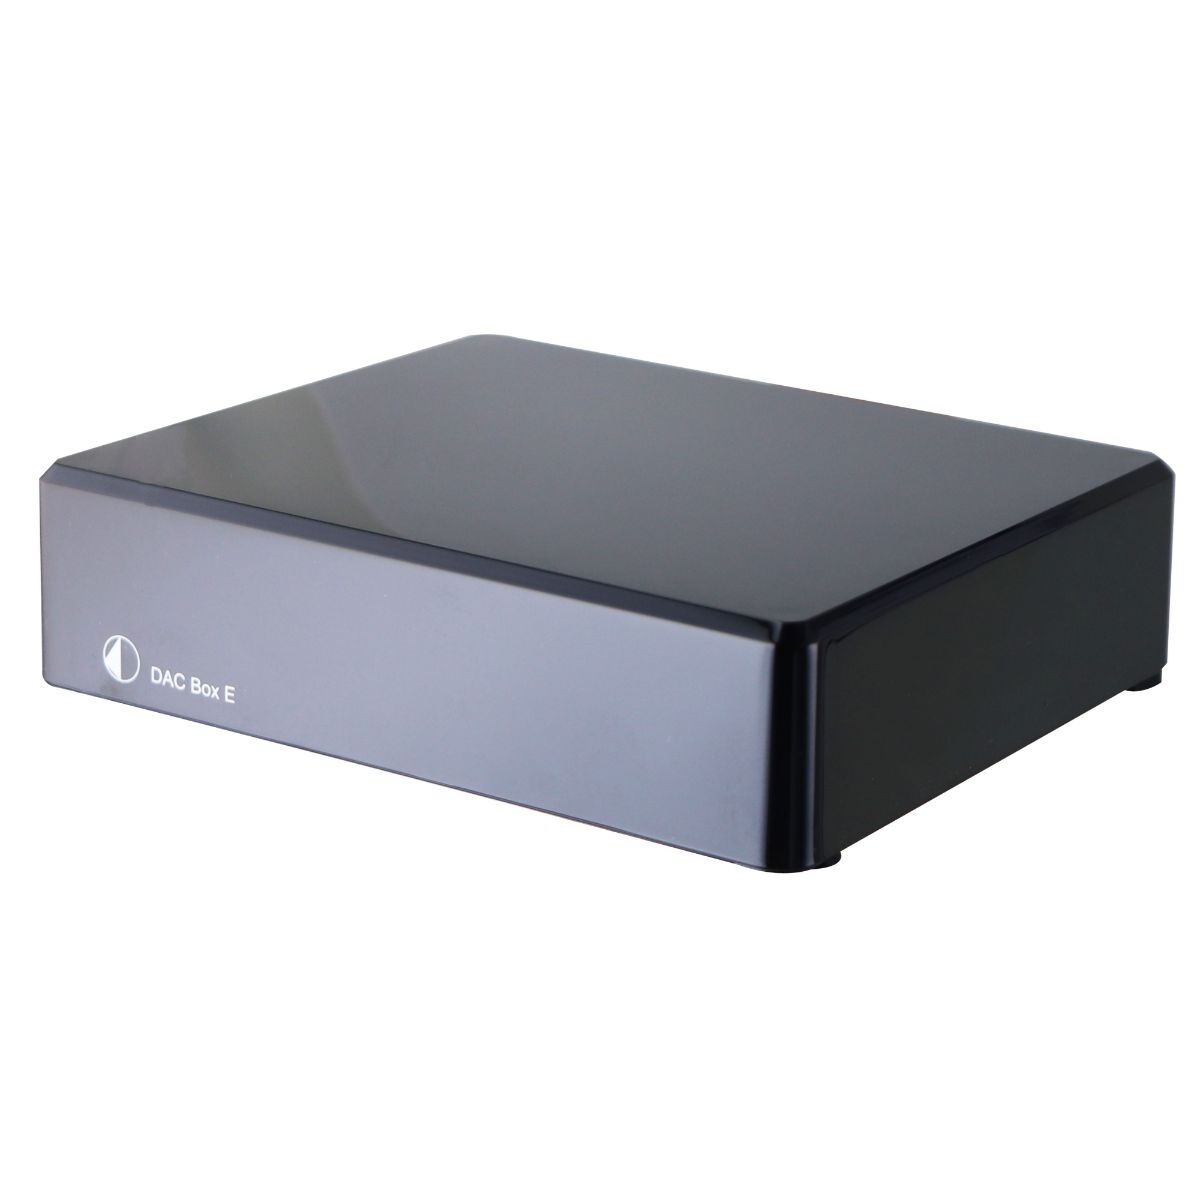 Pro-Ject DAC Box E Digital to Analog Converter - Black